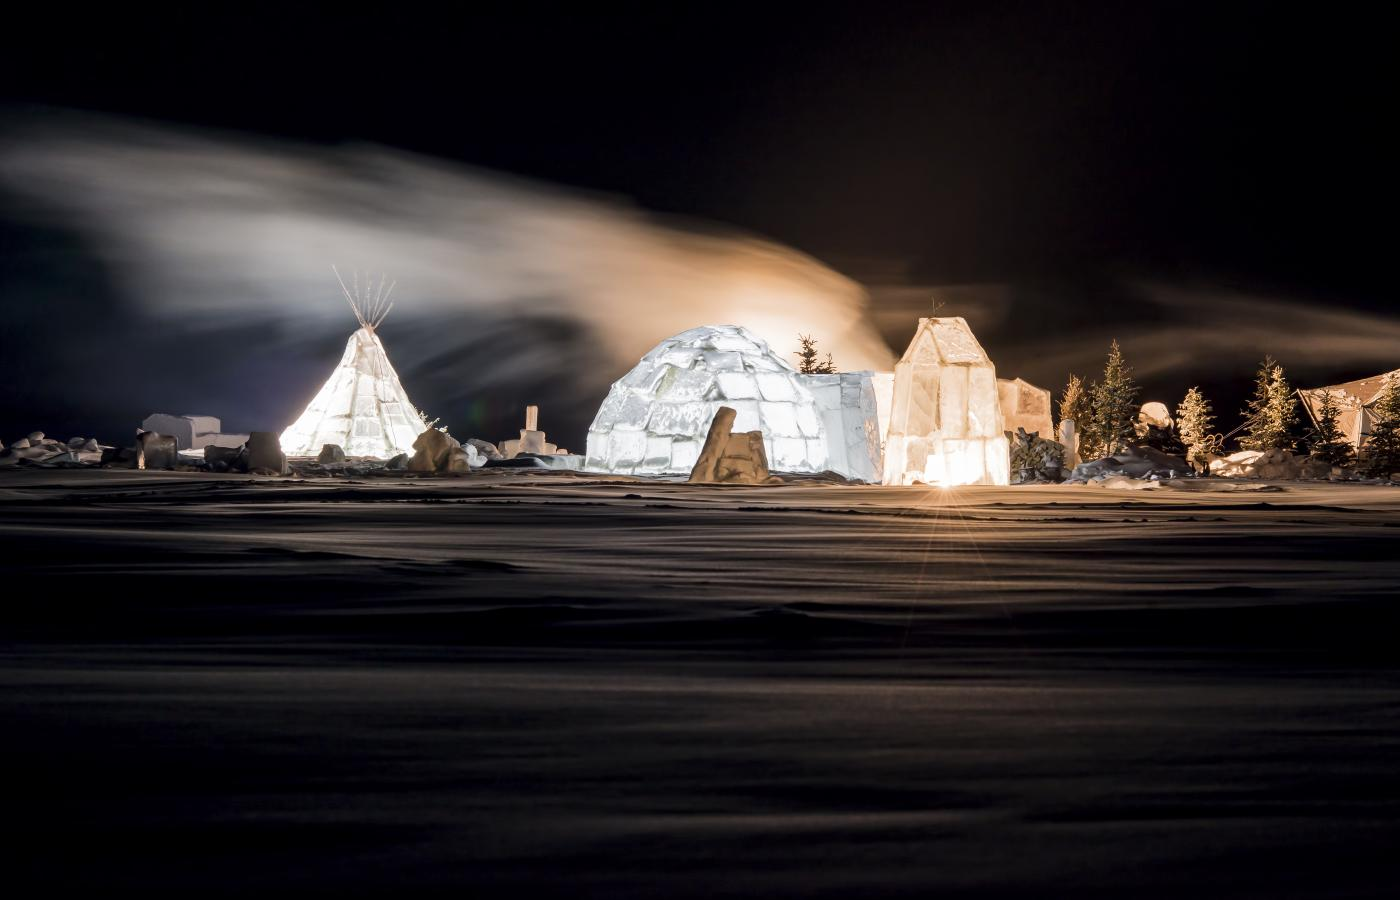 ice village all lit up